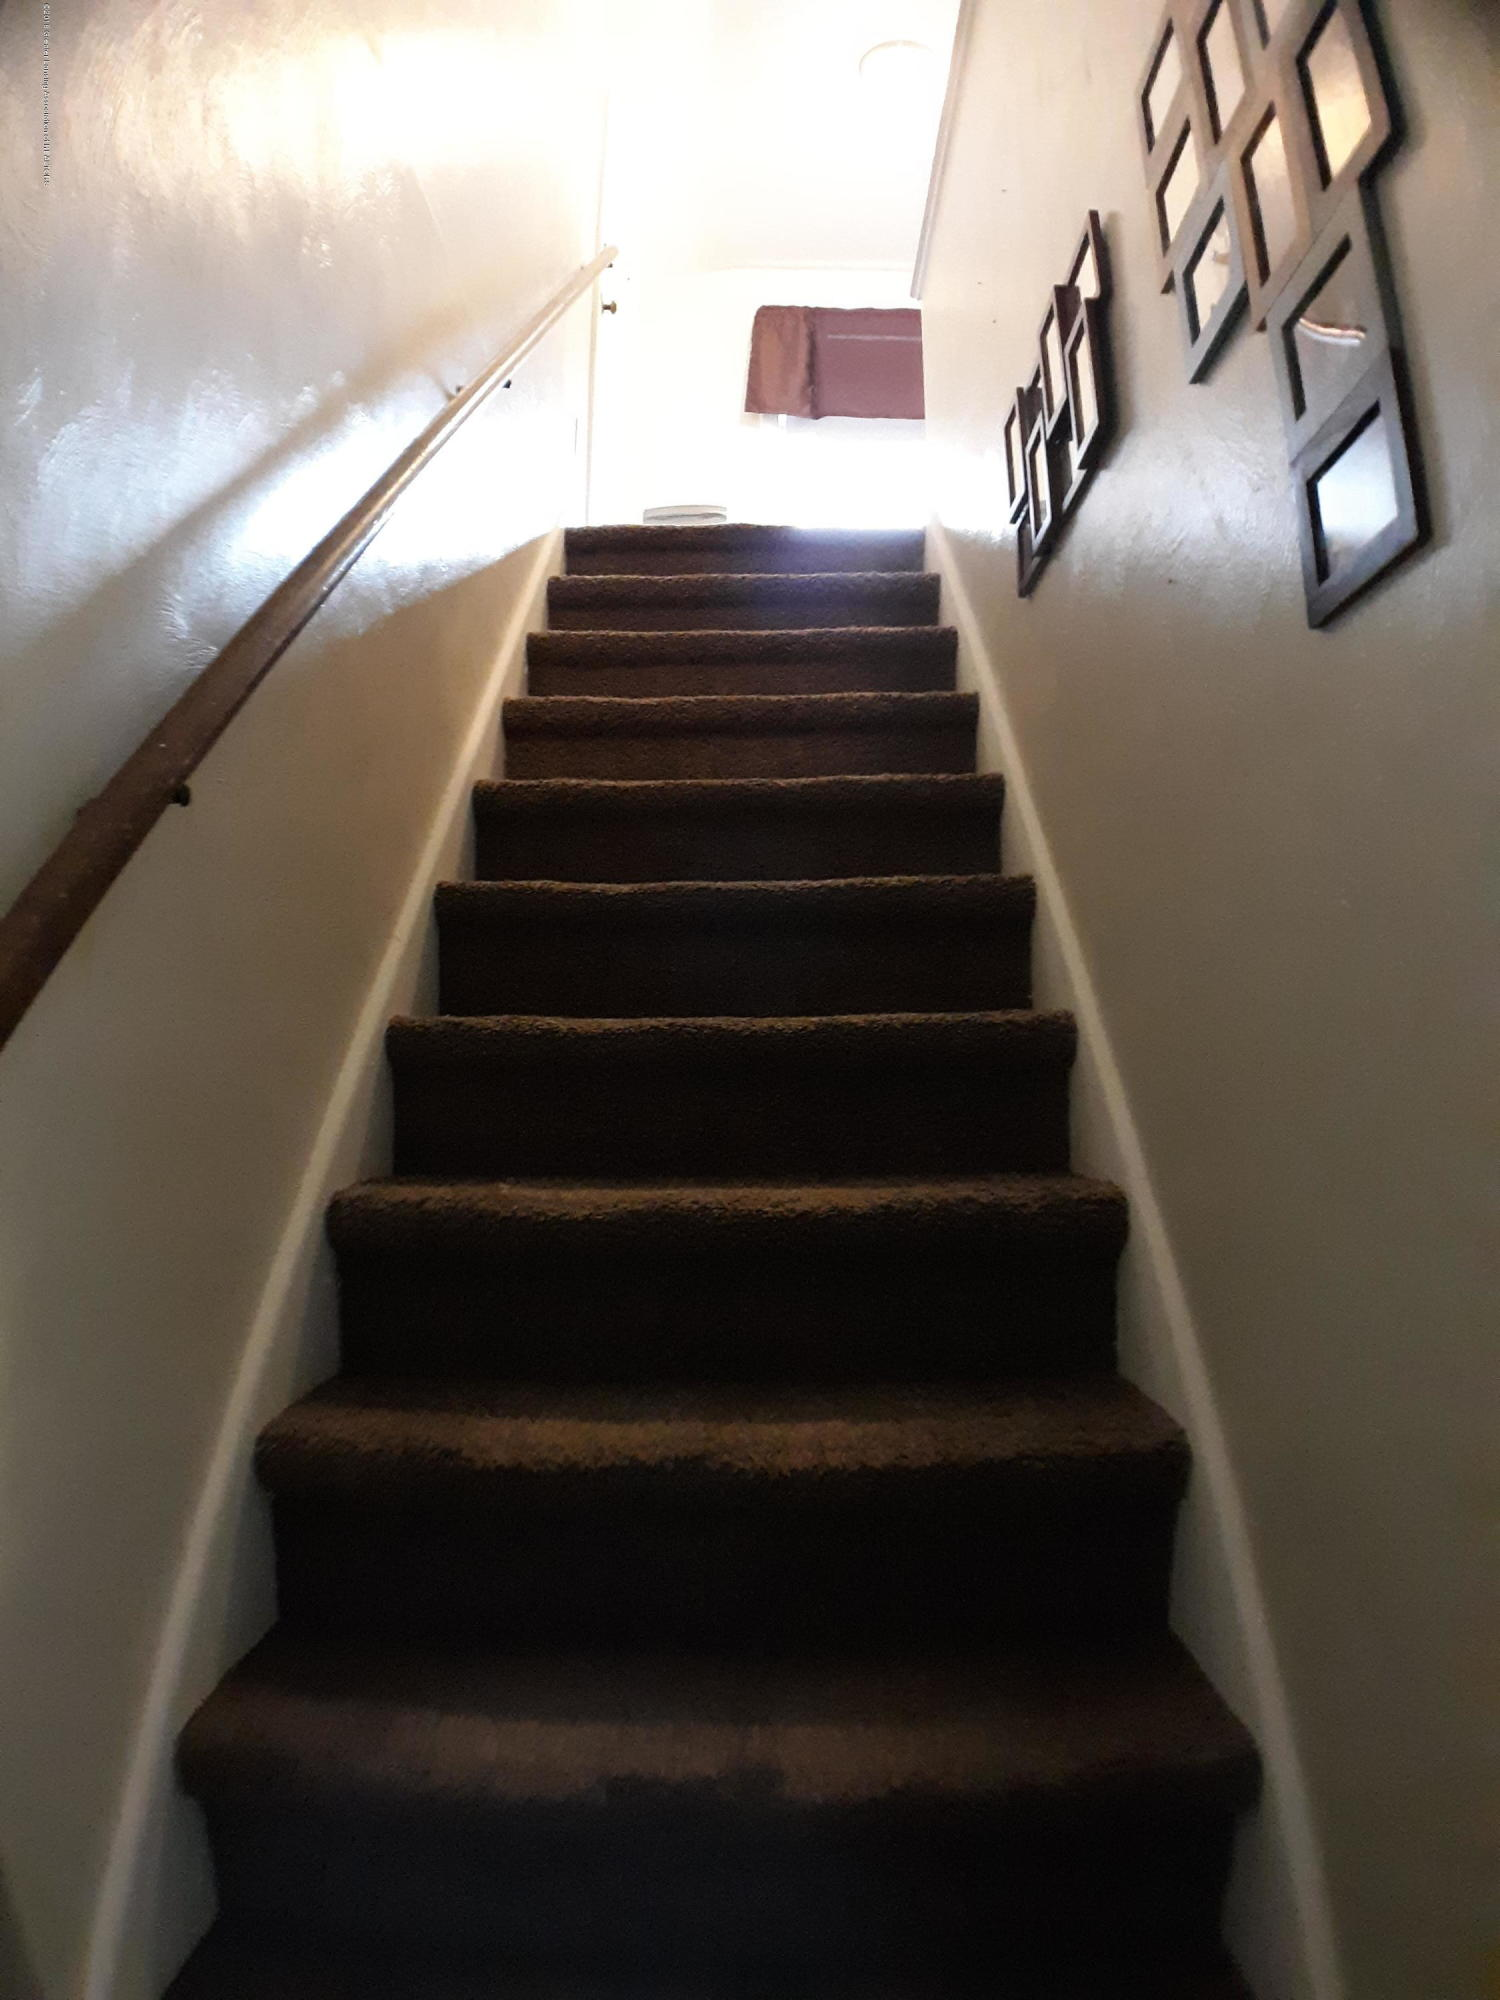 1718 Victor Ave - 1718 stairs - 10